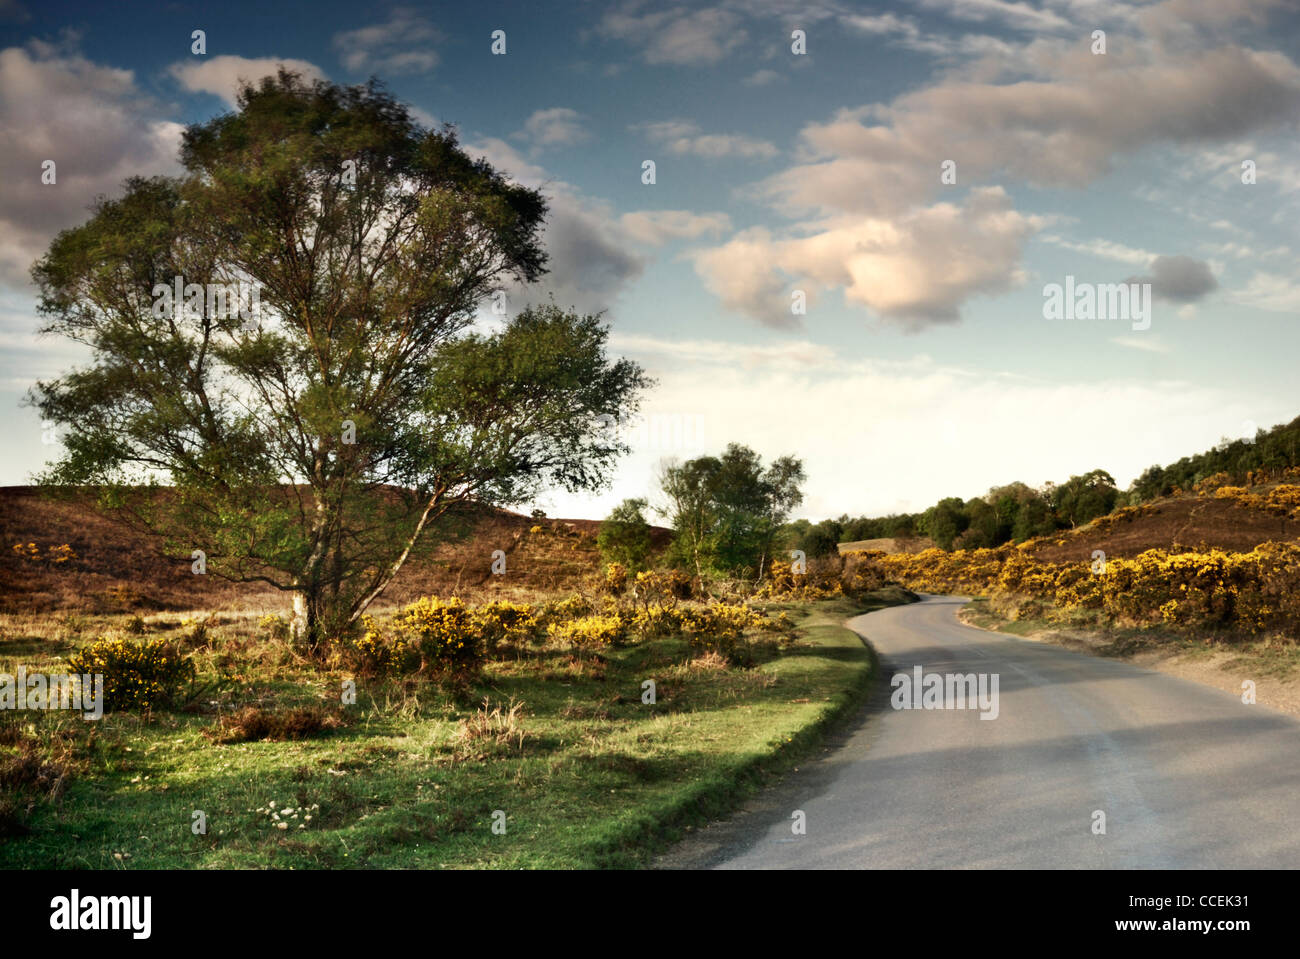 Heathland in the New Forest, Hampshire, England, UK Stock Photo